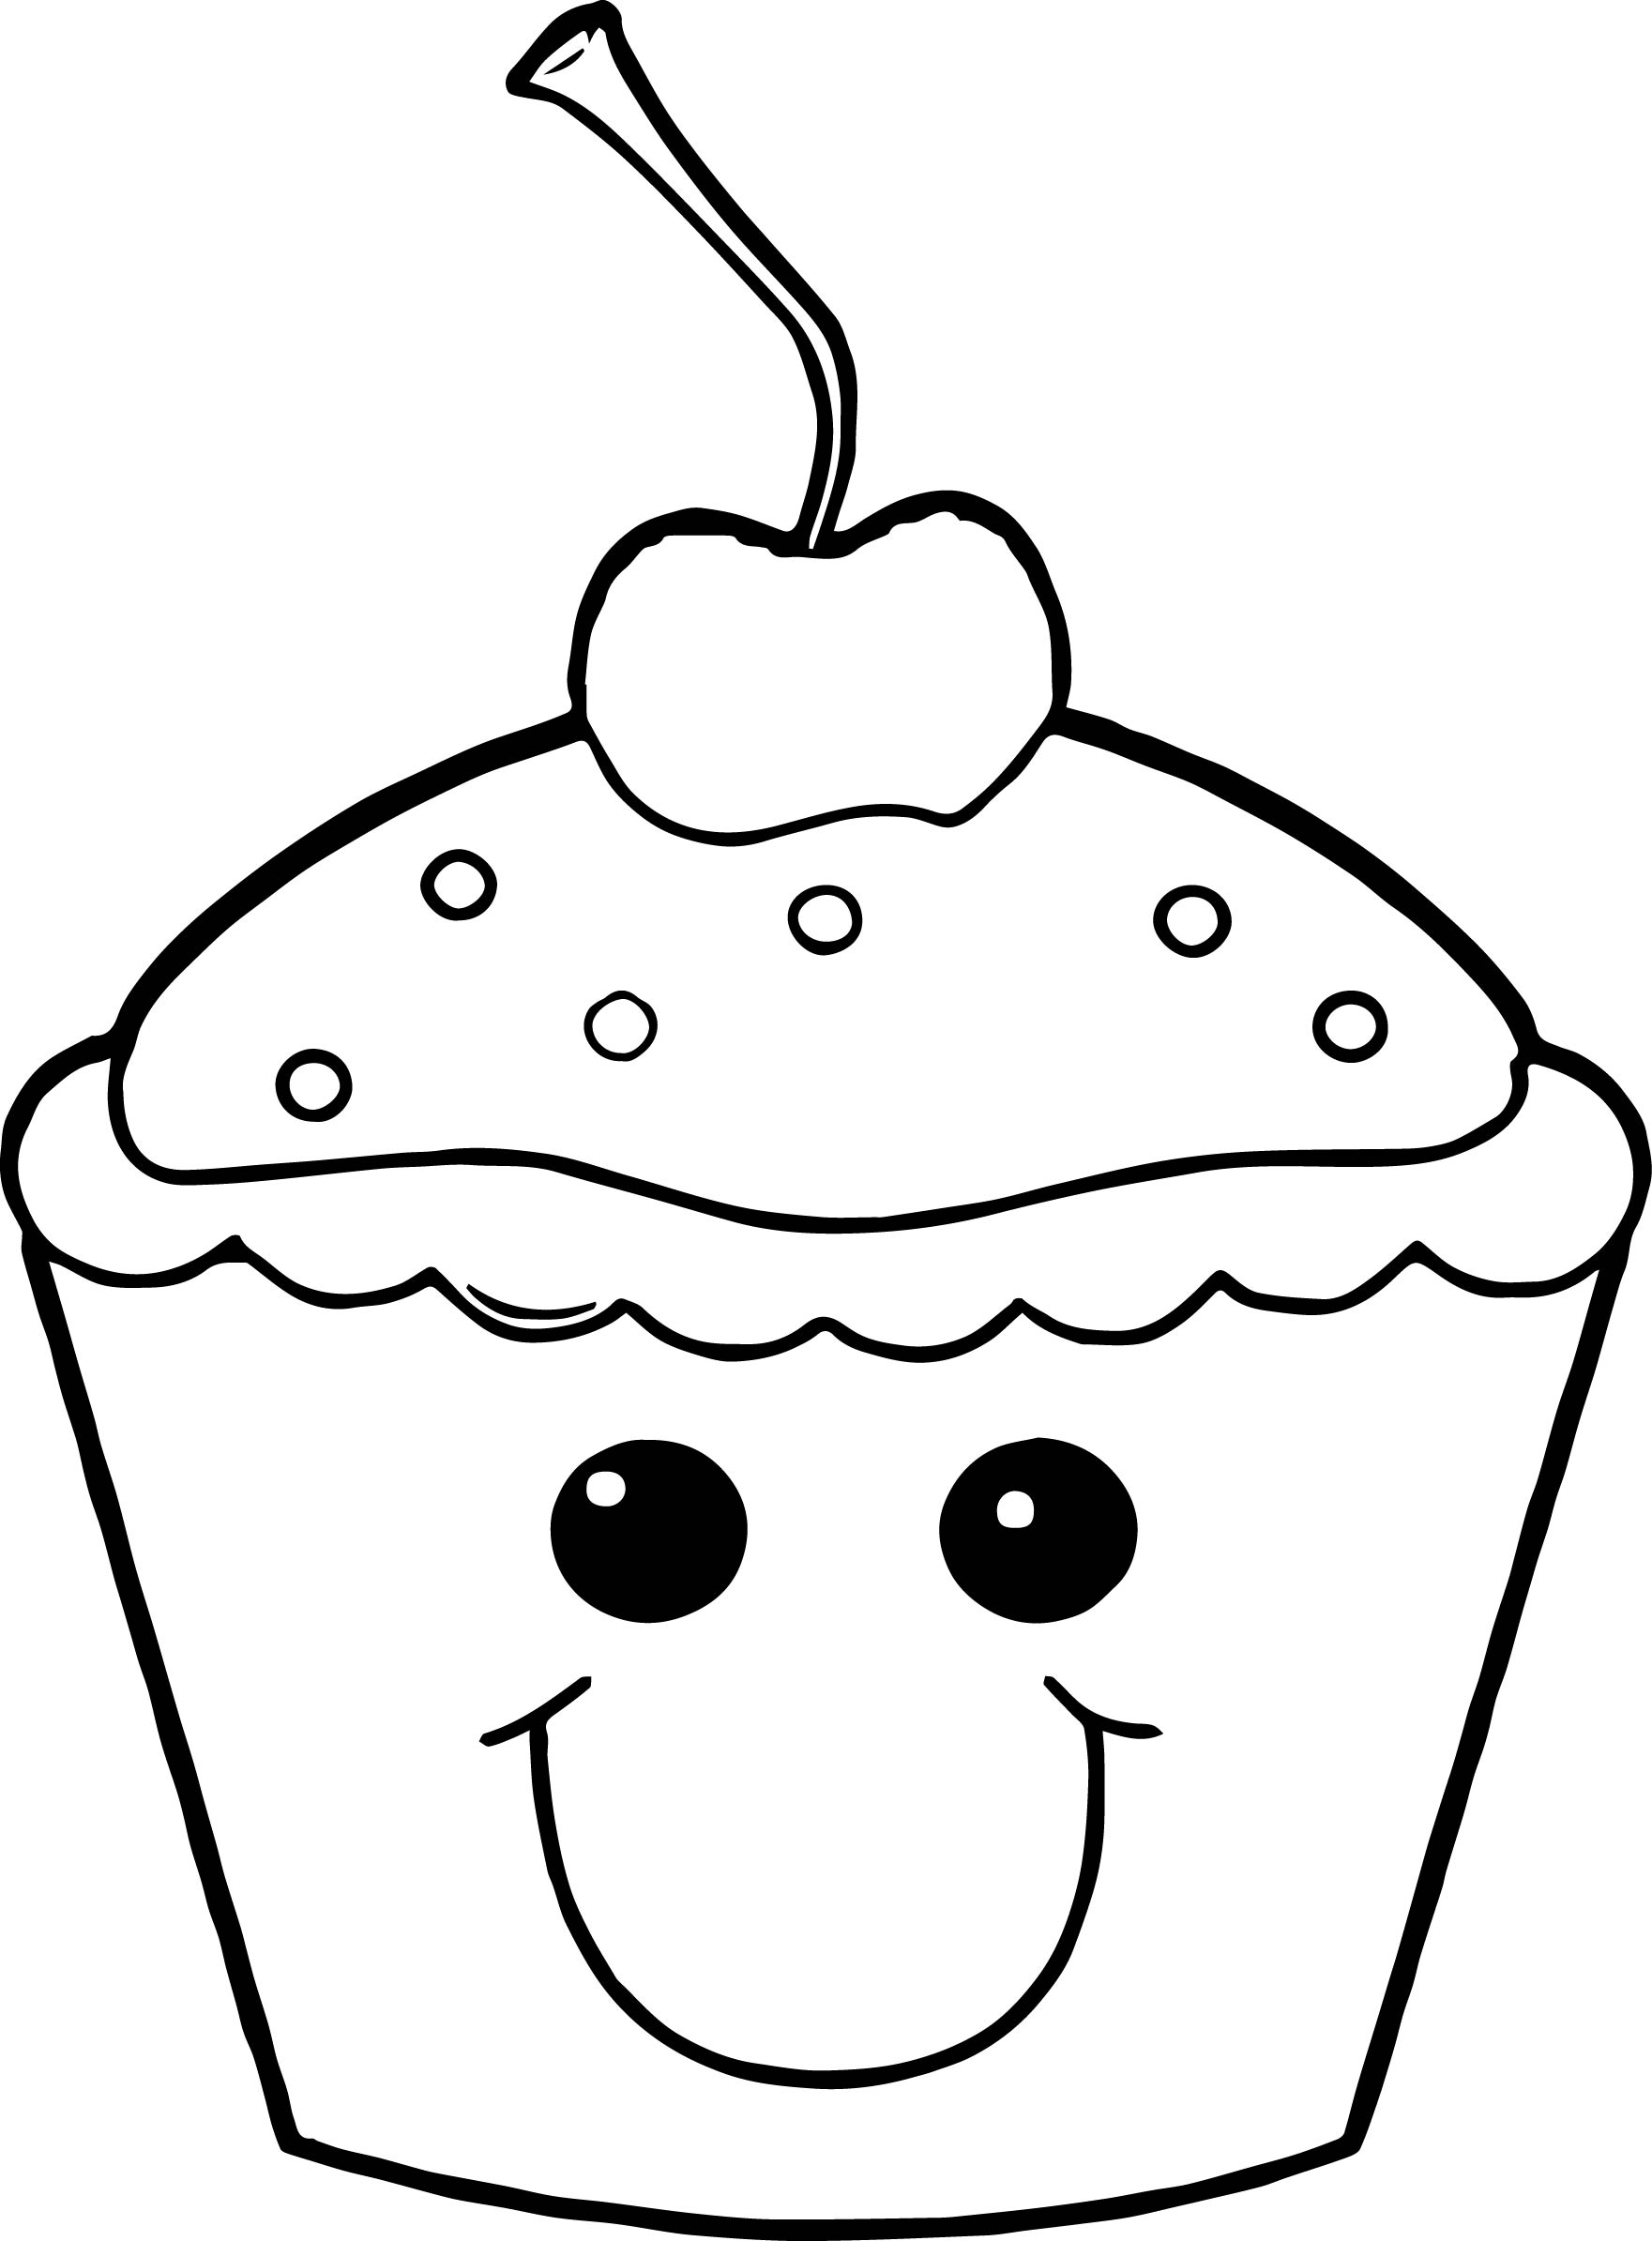 Very Cute Cartoon Smile Cupcake Coloring Page